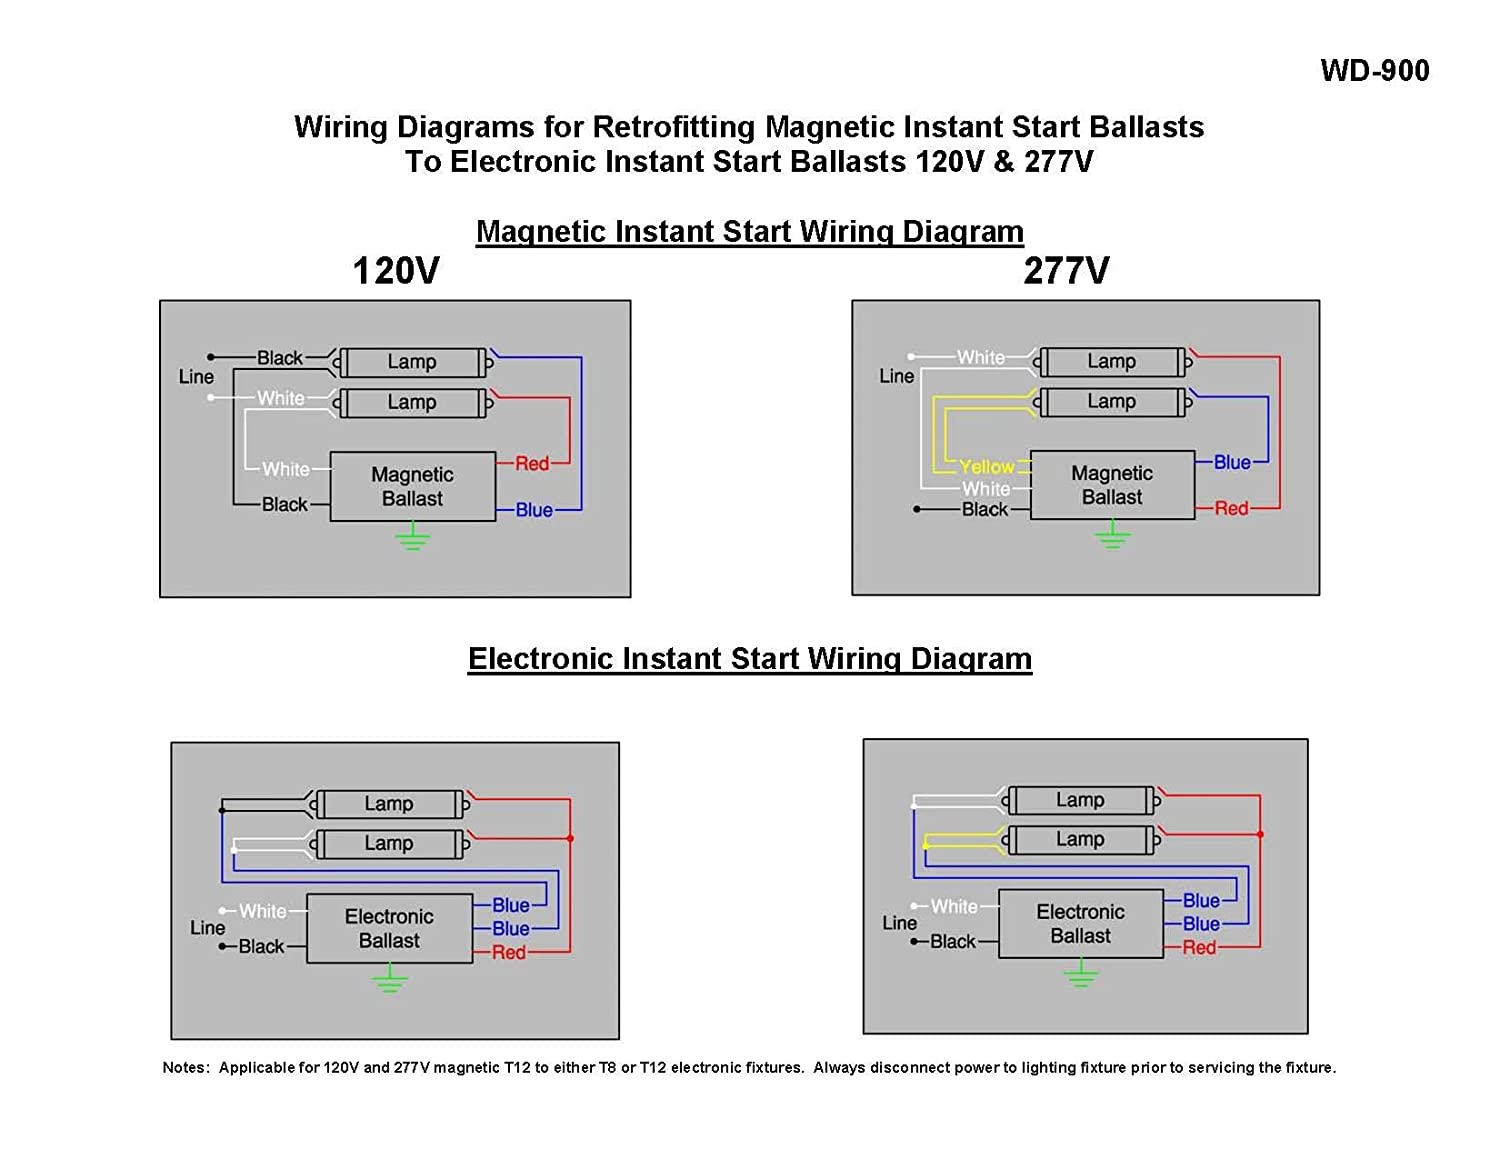 Sign Ballast Wiring Diagram - wiring data